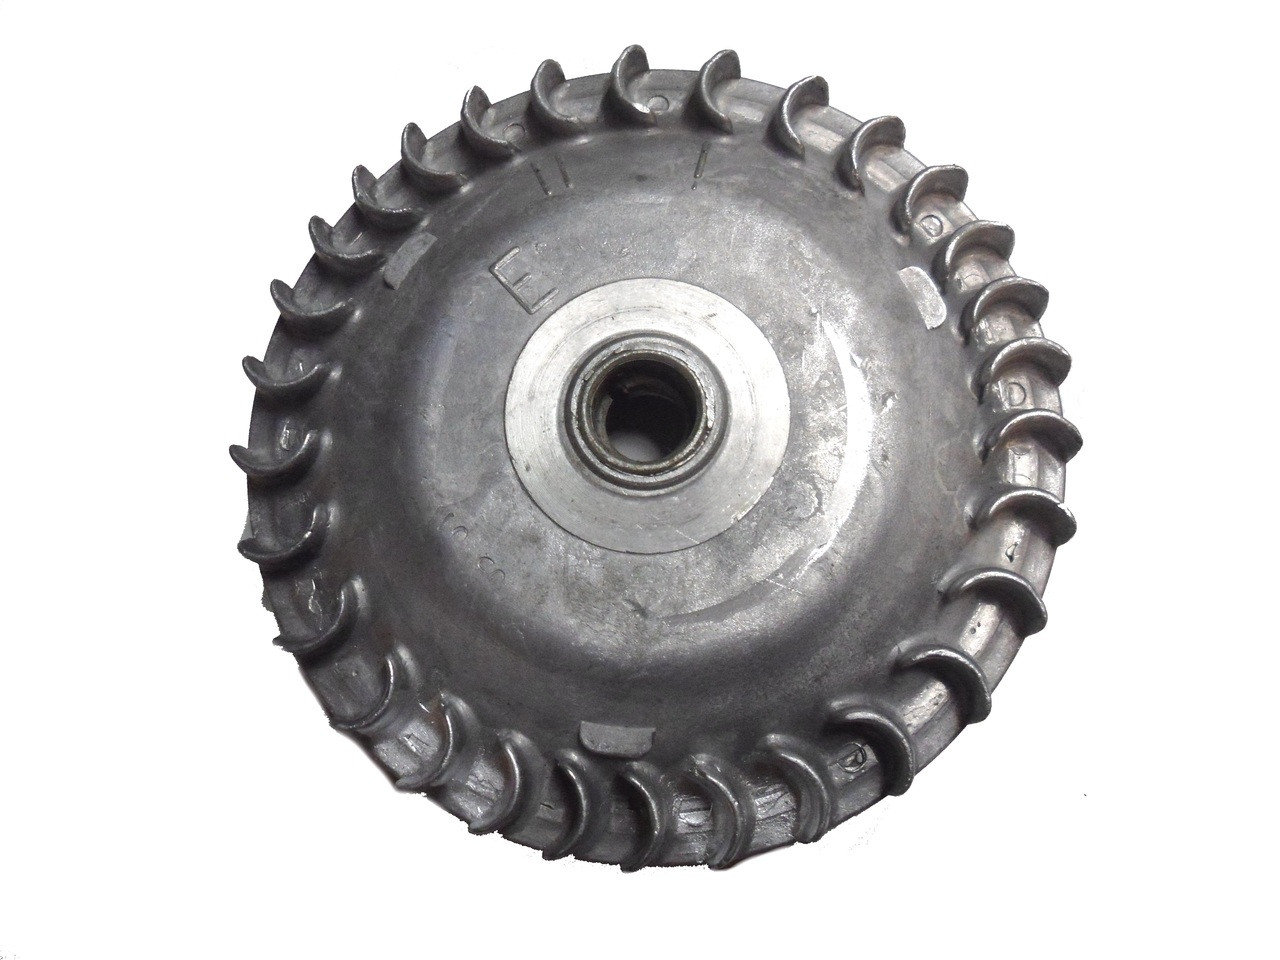 Original Kinetic Magneto Rotor / Flywheel, No Window - 19022100